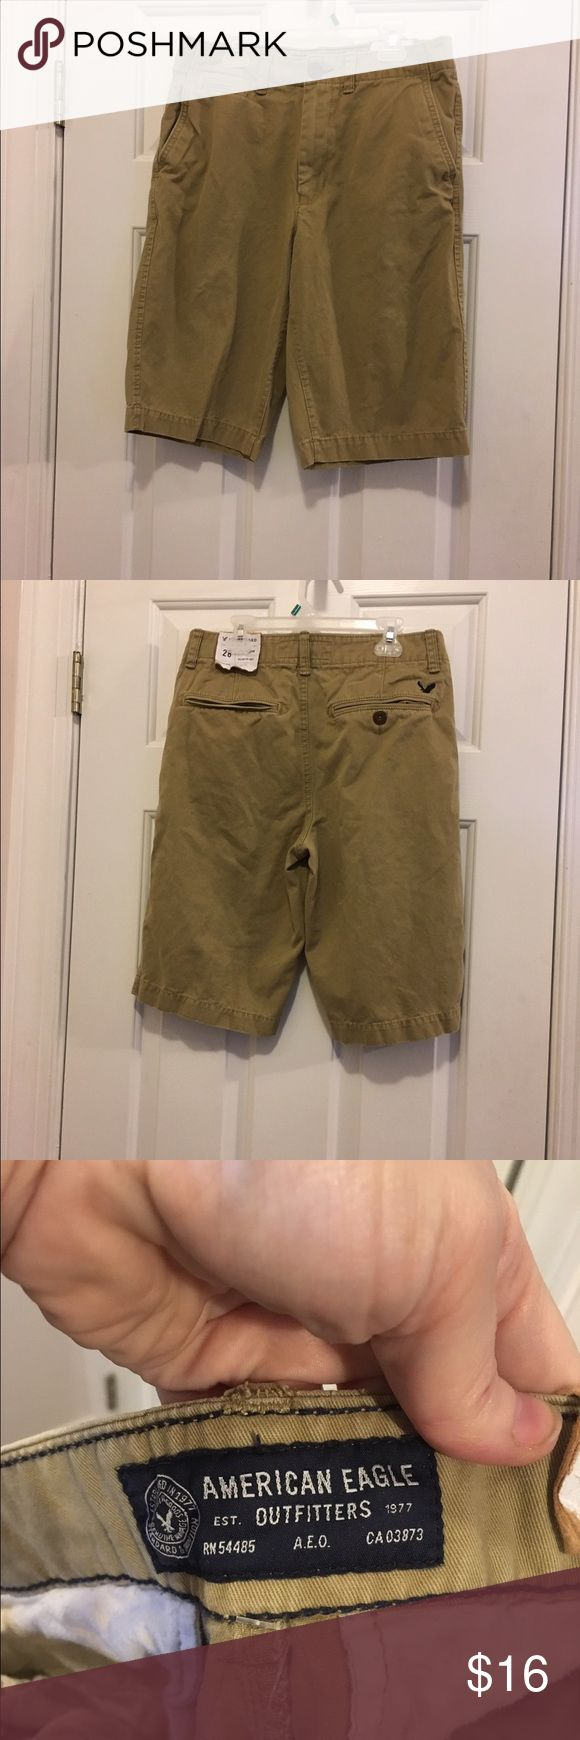 Size 28 men's American eagle shorts NWT Size 28 NWT American eagle longboard shorts, 12 inch inseam, NWT. American Eagle Outfitters Shorts